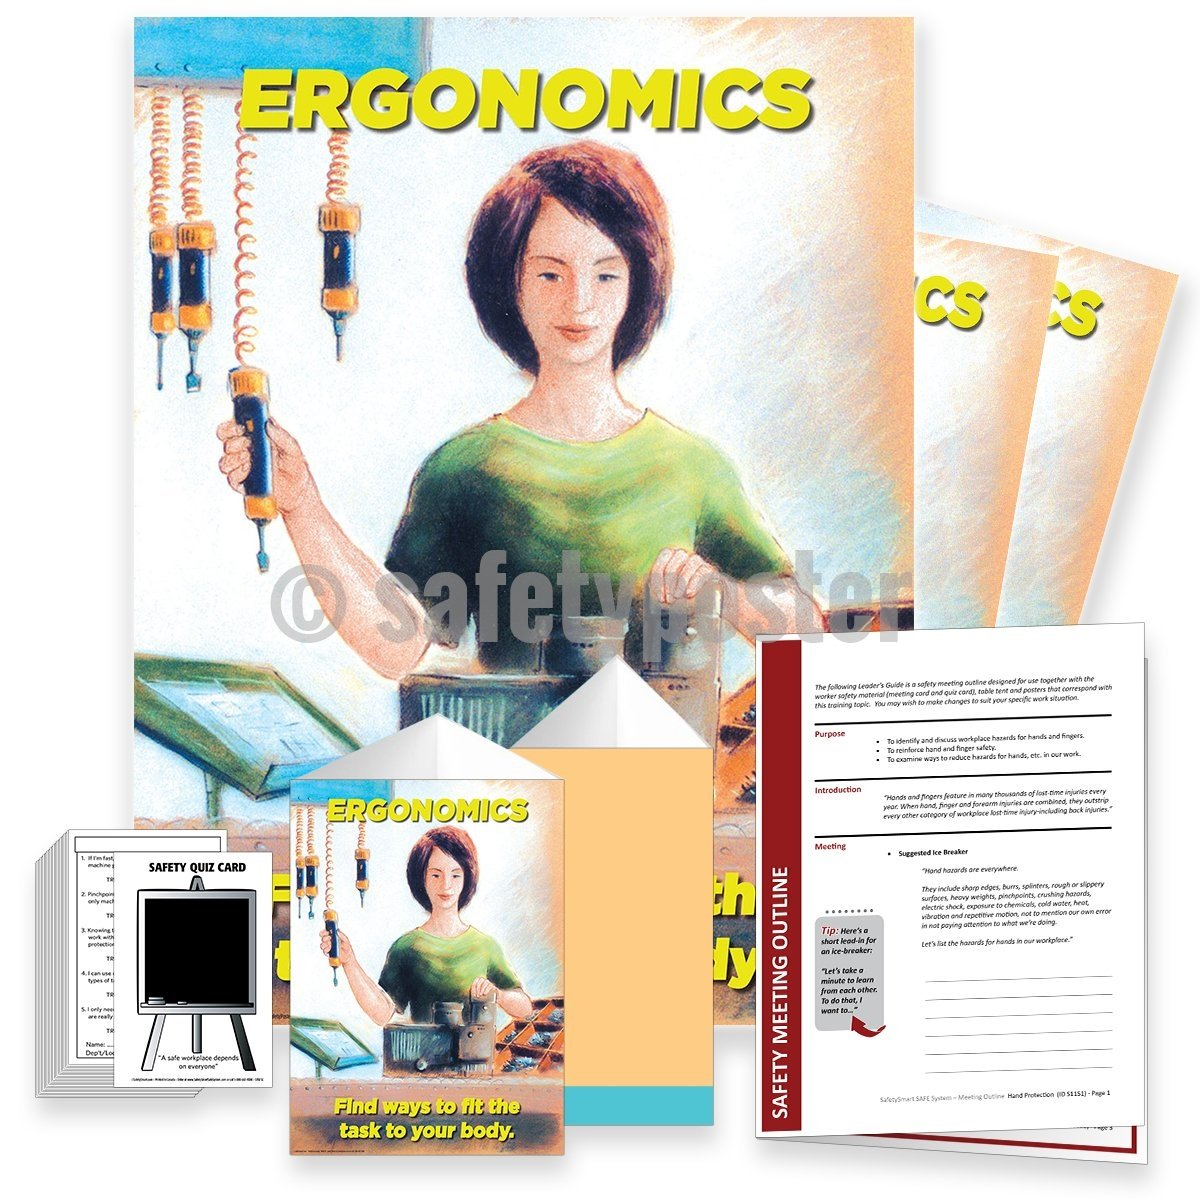 Safety Meeting Kit - Ergonomics Find Ways To Fit The Task Your Body Kits